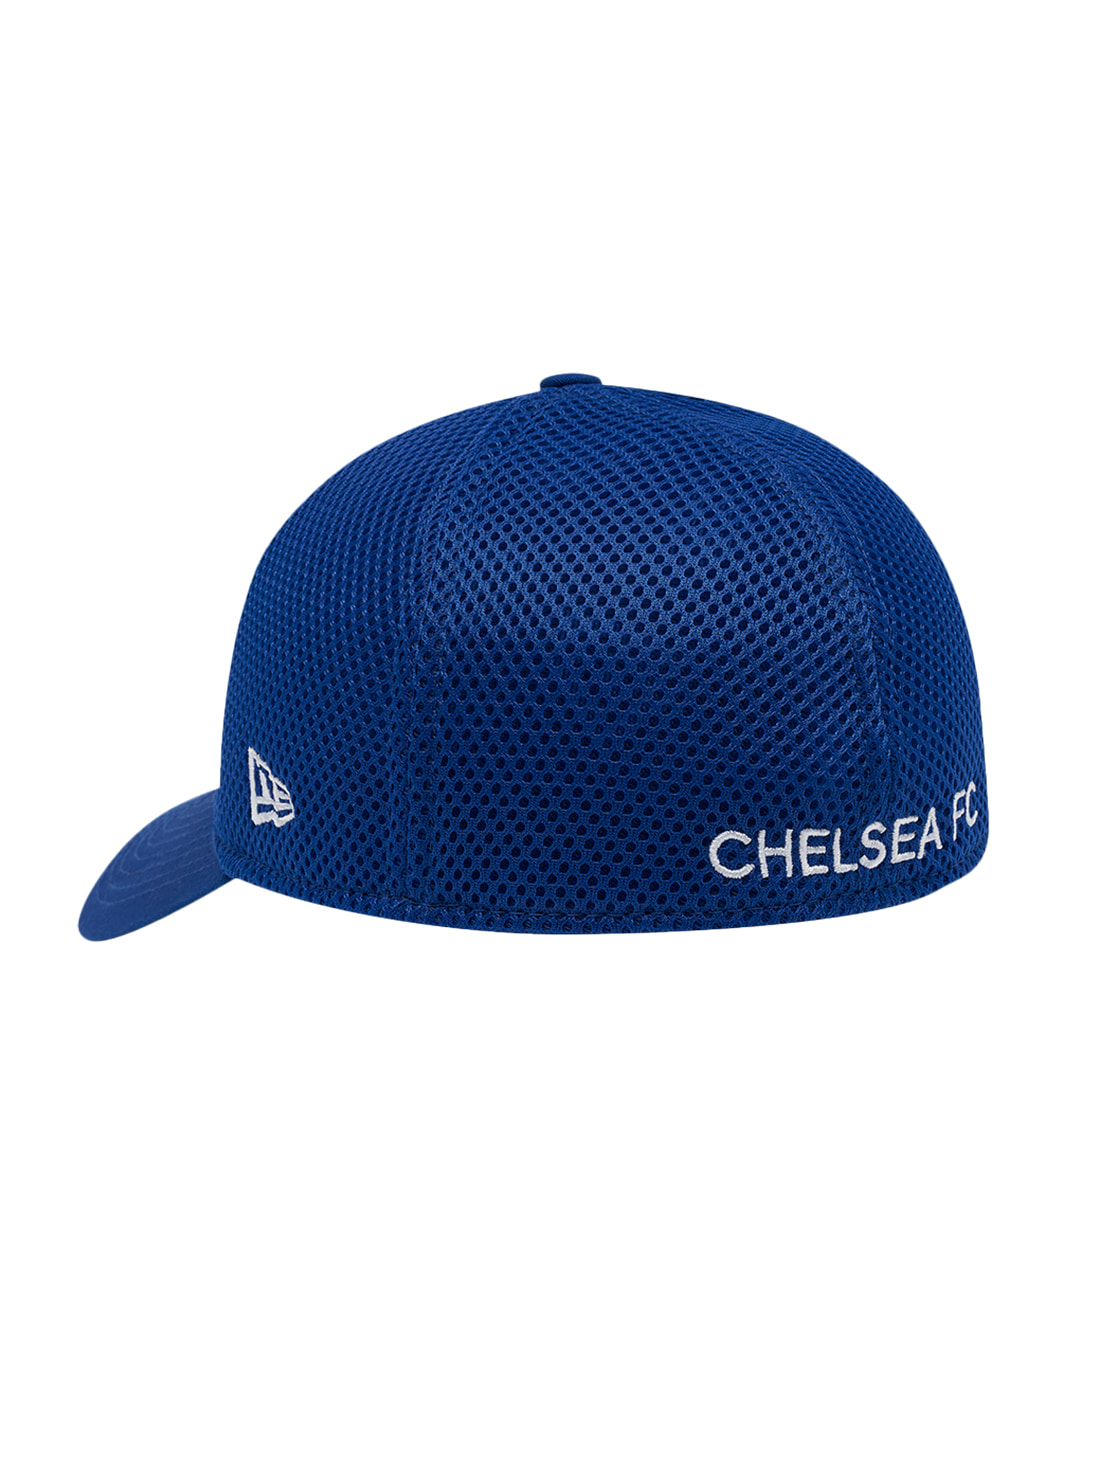 GOALSTUDIO CHELSEA SPACER MESH 3930 - BLUE